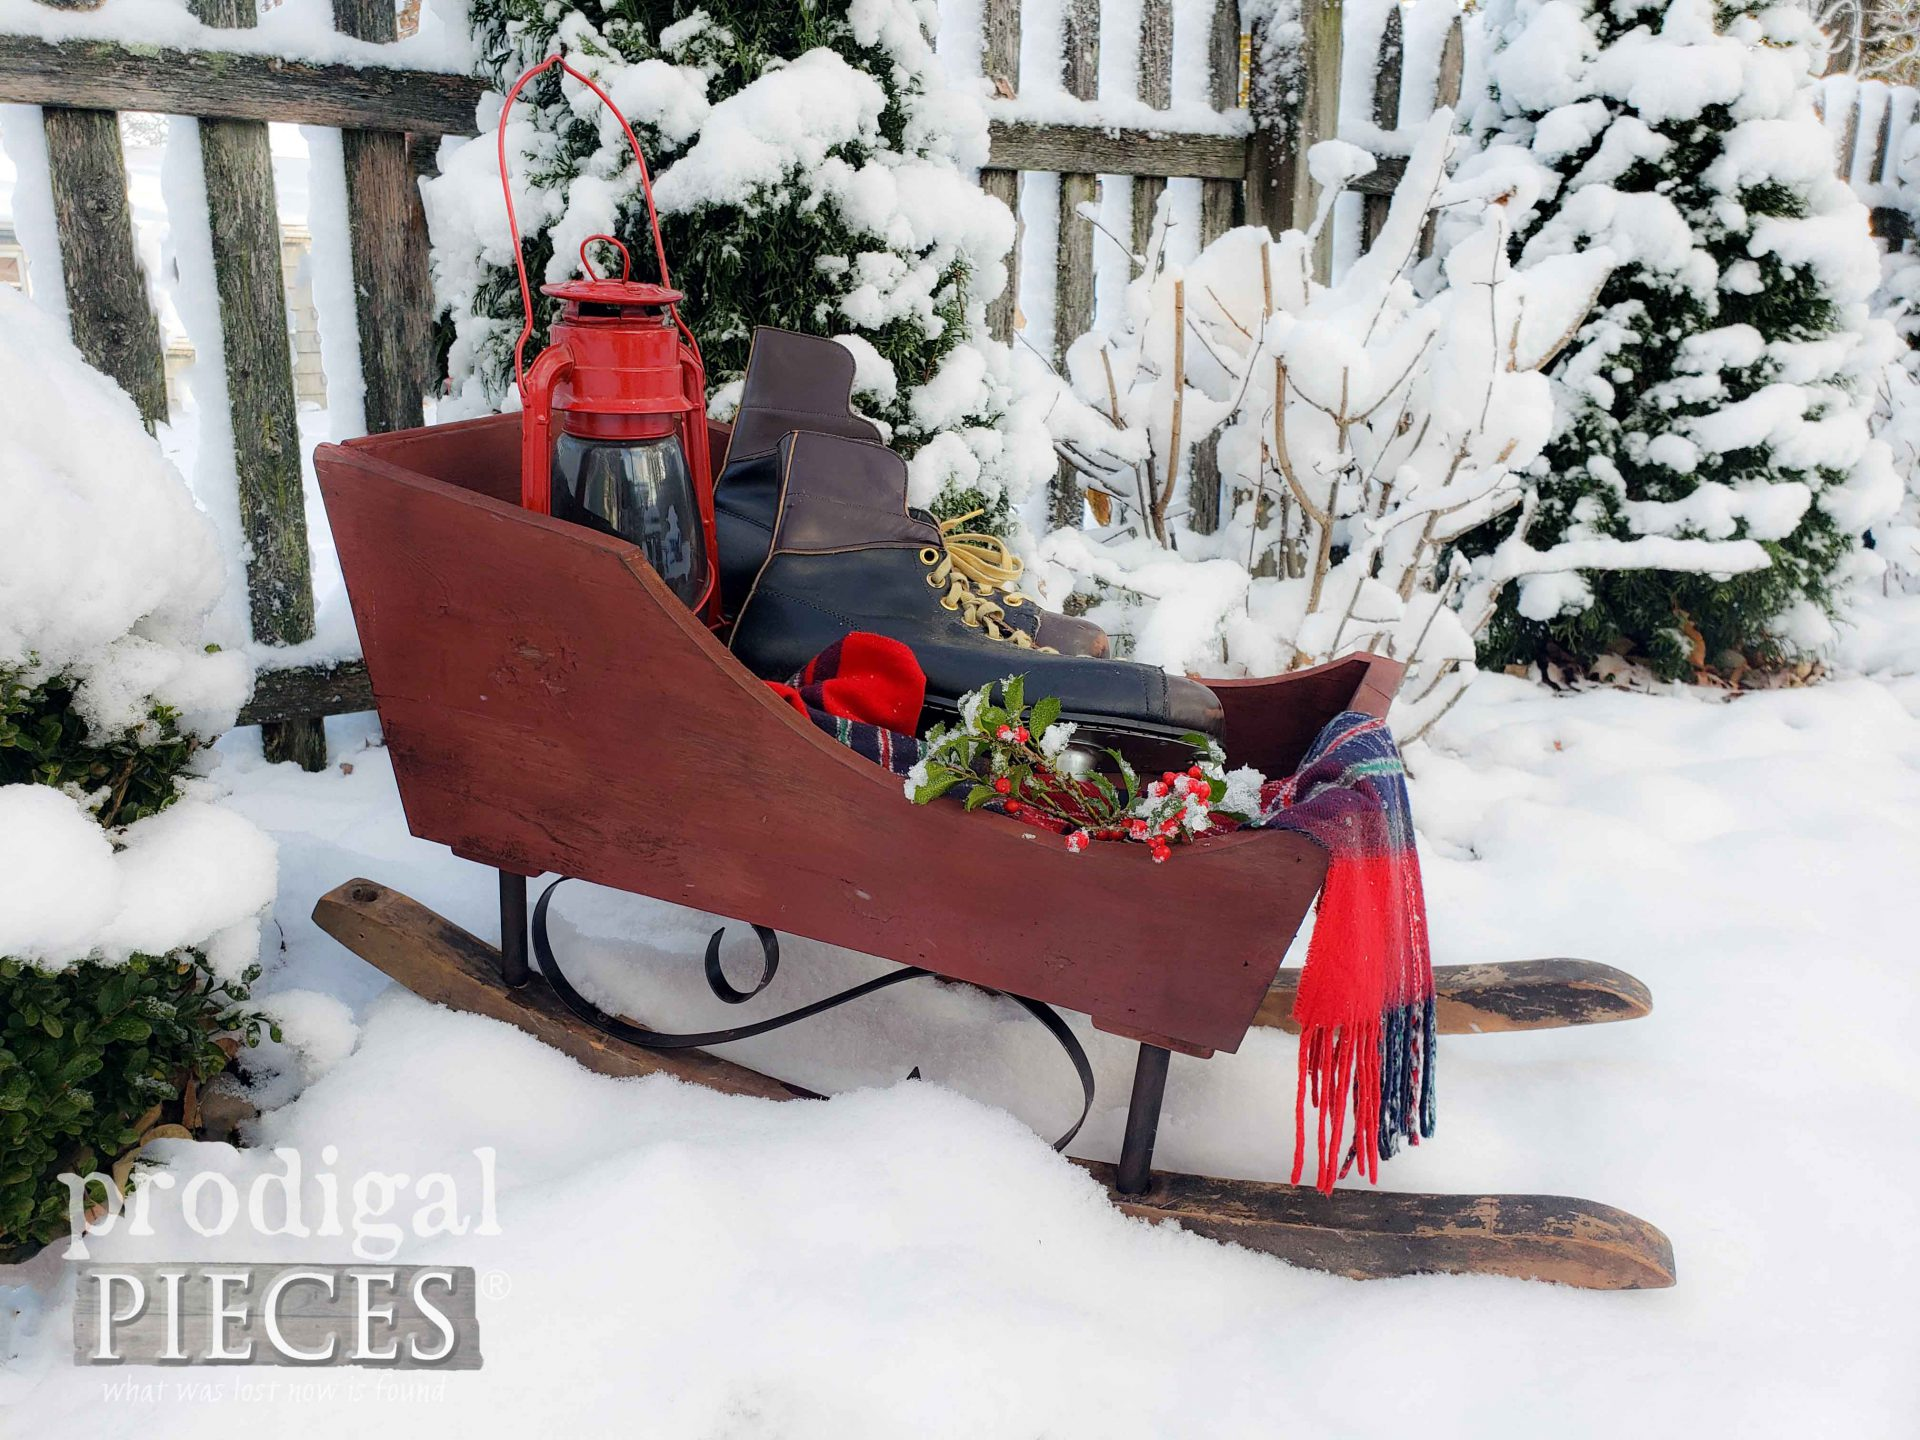 Snowy Christmas Holiday Decor for Farmhouse Style by Larissa of Prodigal Pieces | prodigalpieces.com #prodigalpieces #diy #farmhouse #home #christmas #homedecor